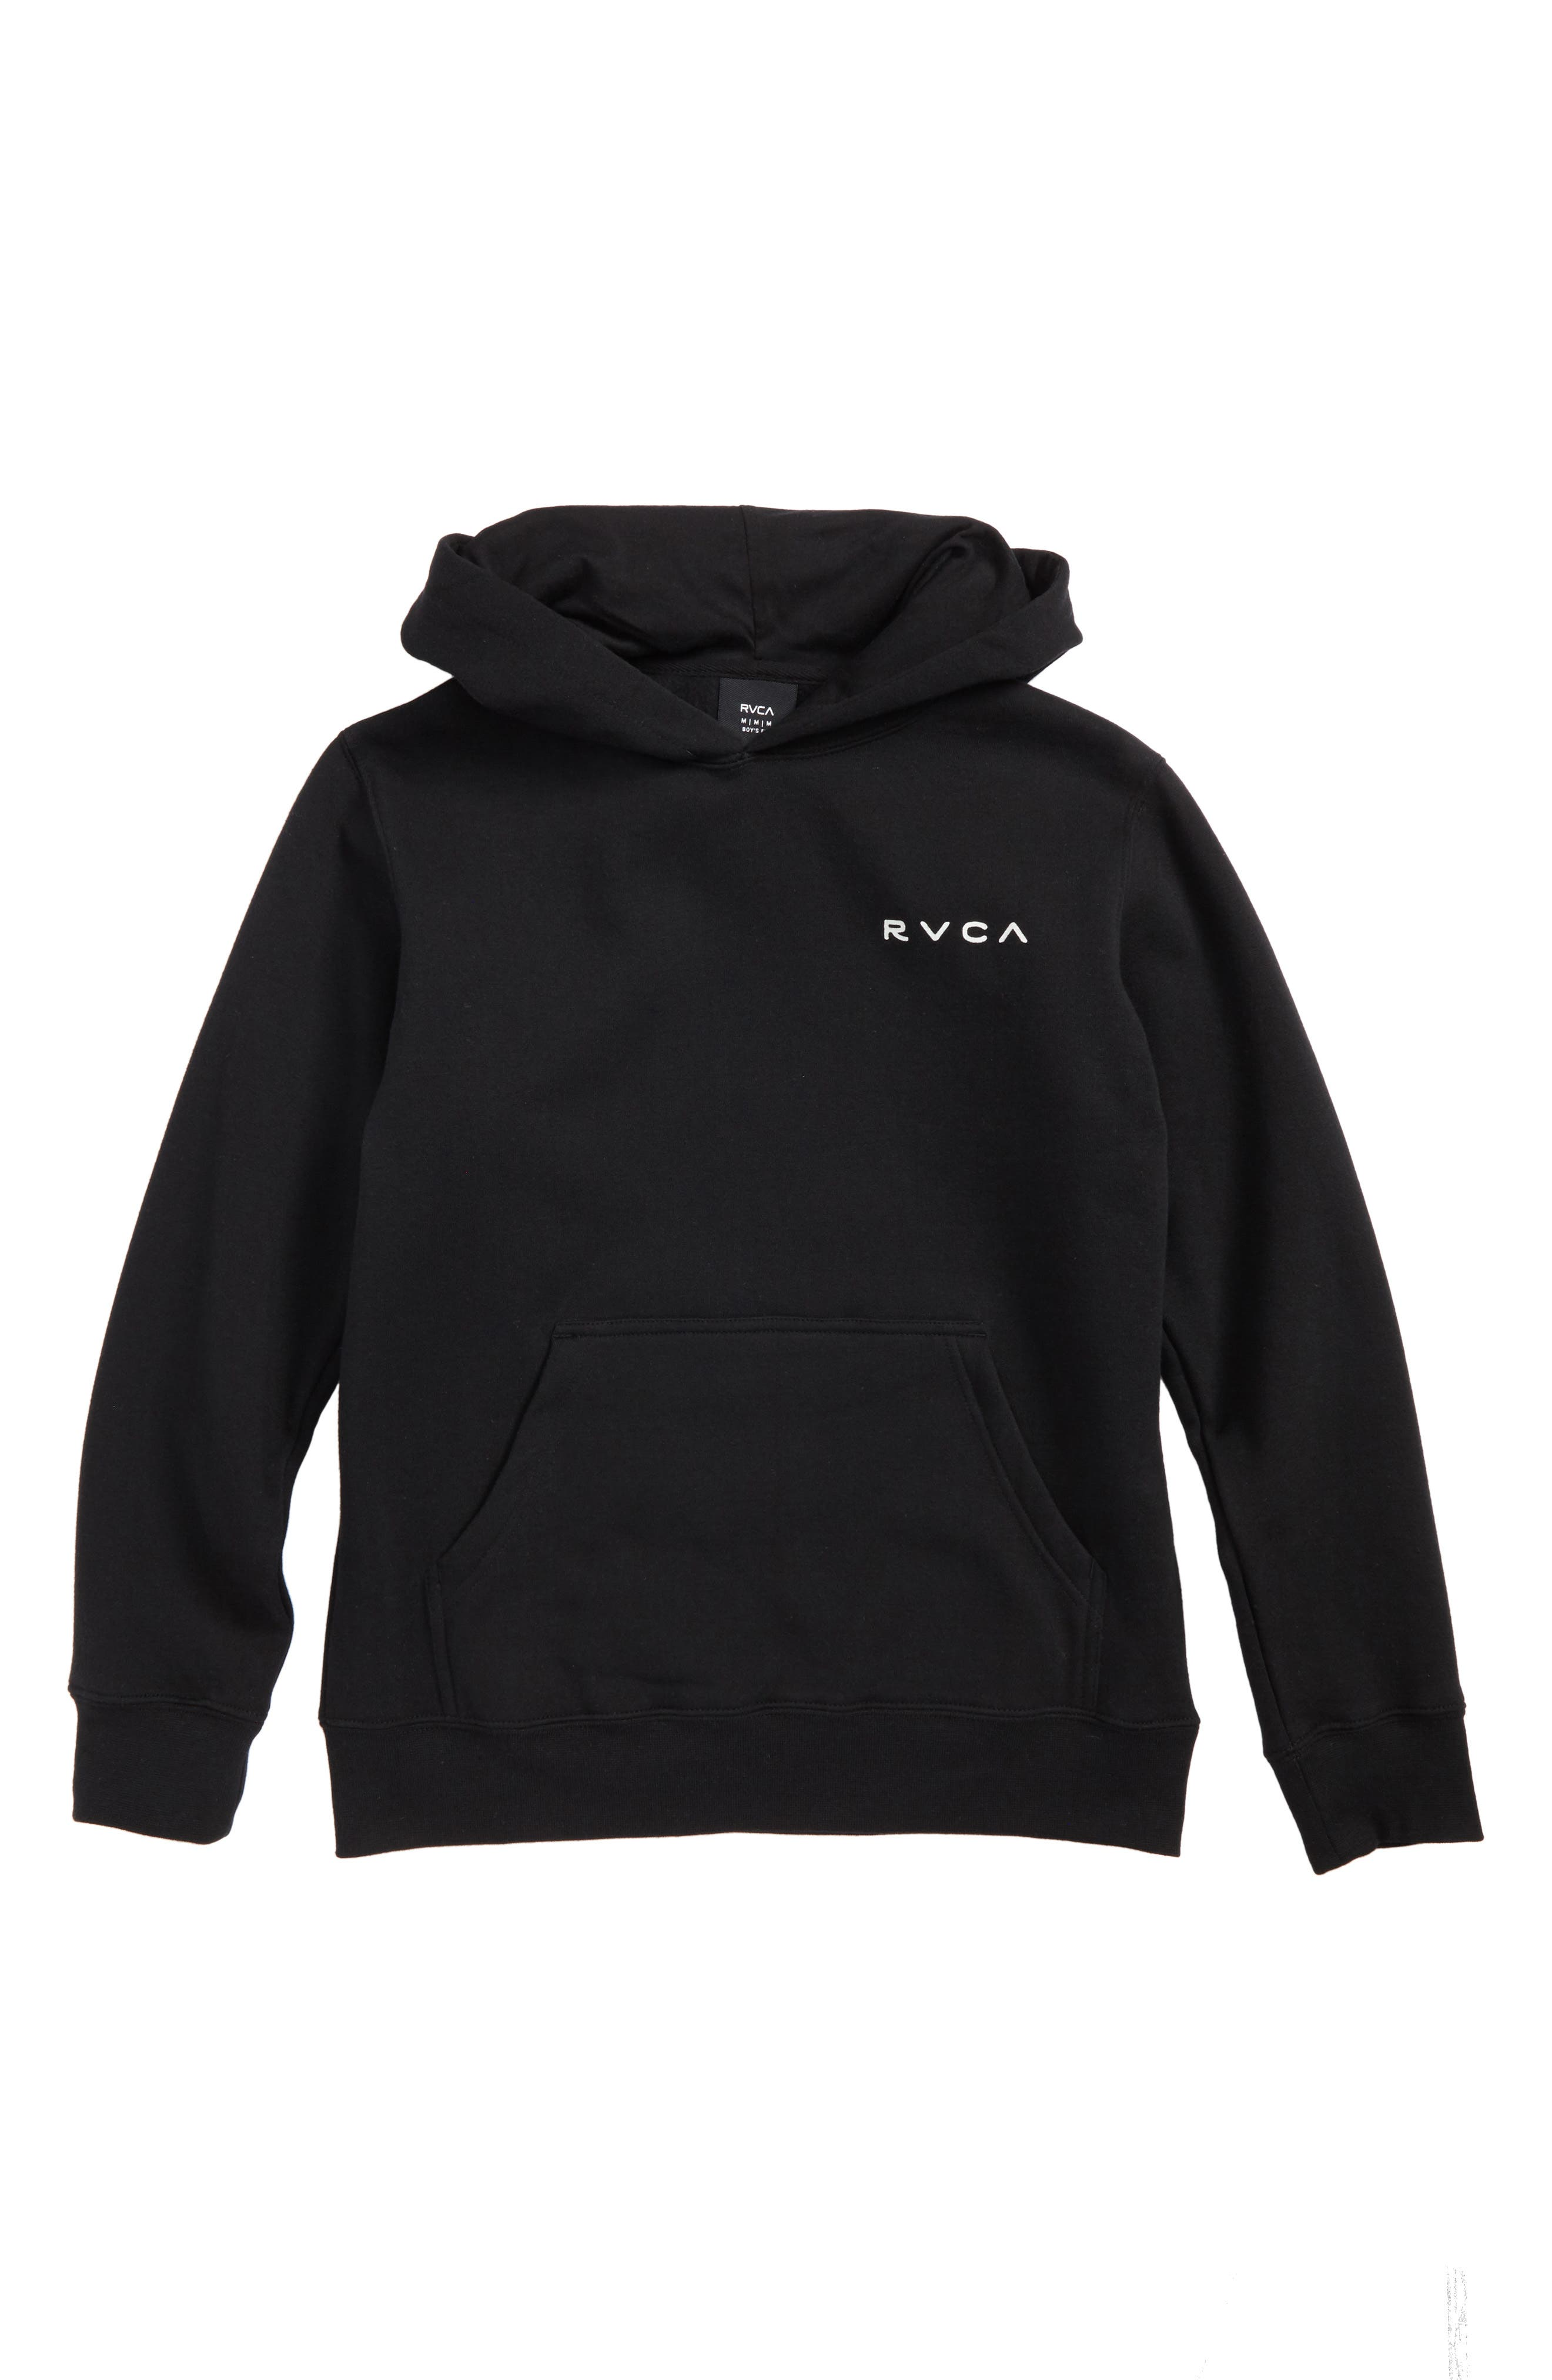 Sea Pullover Hoodie,                             Main thumbnail 1, color,                             001